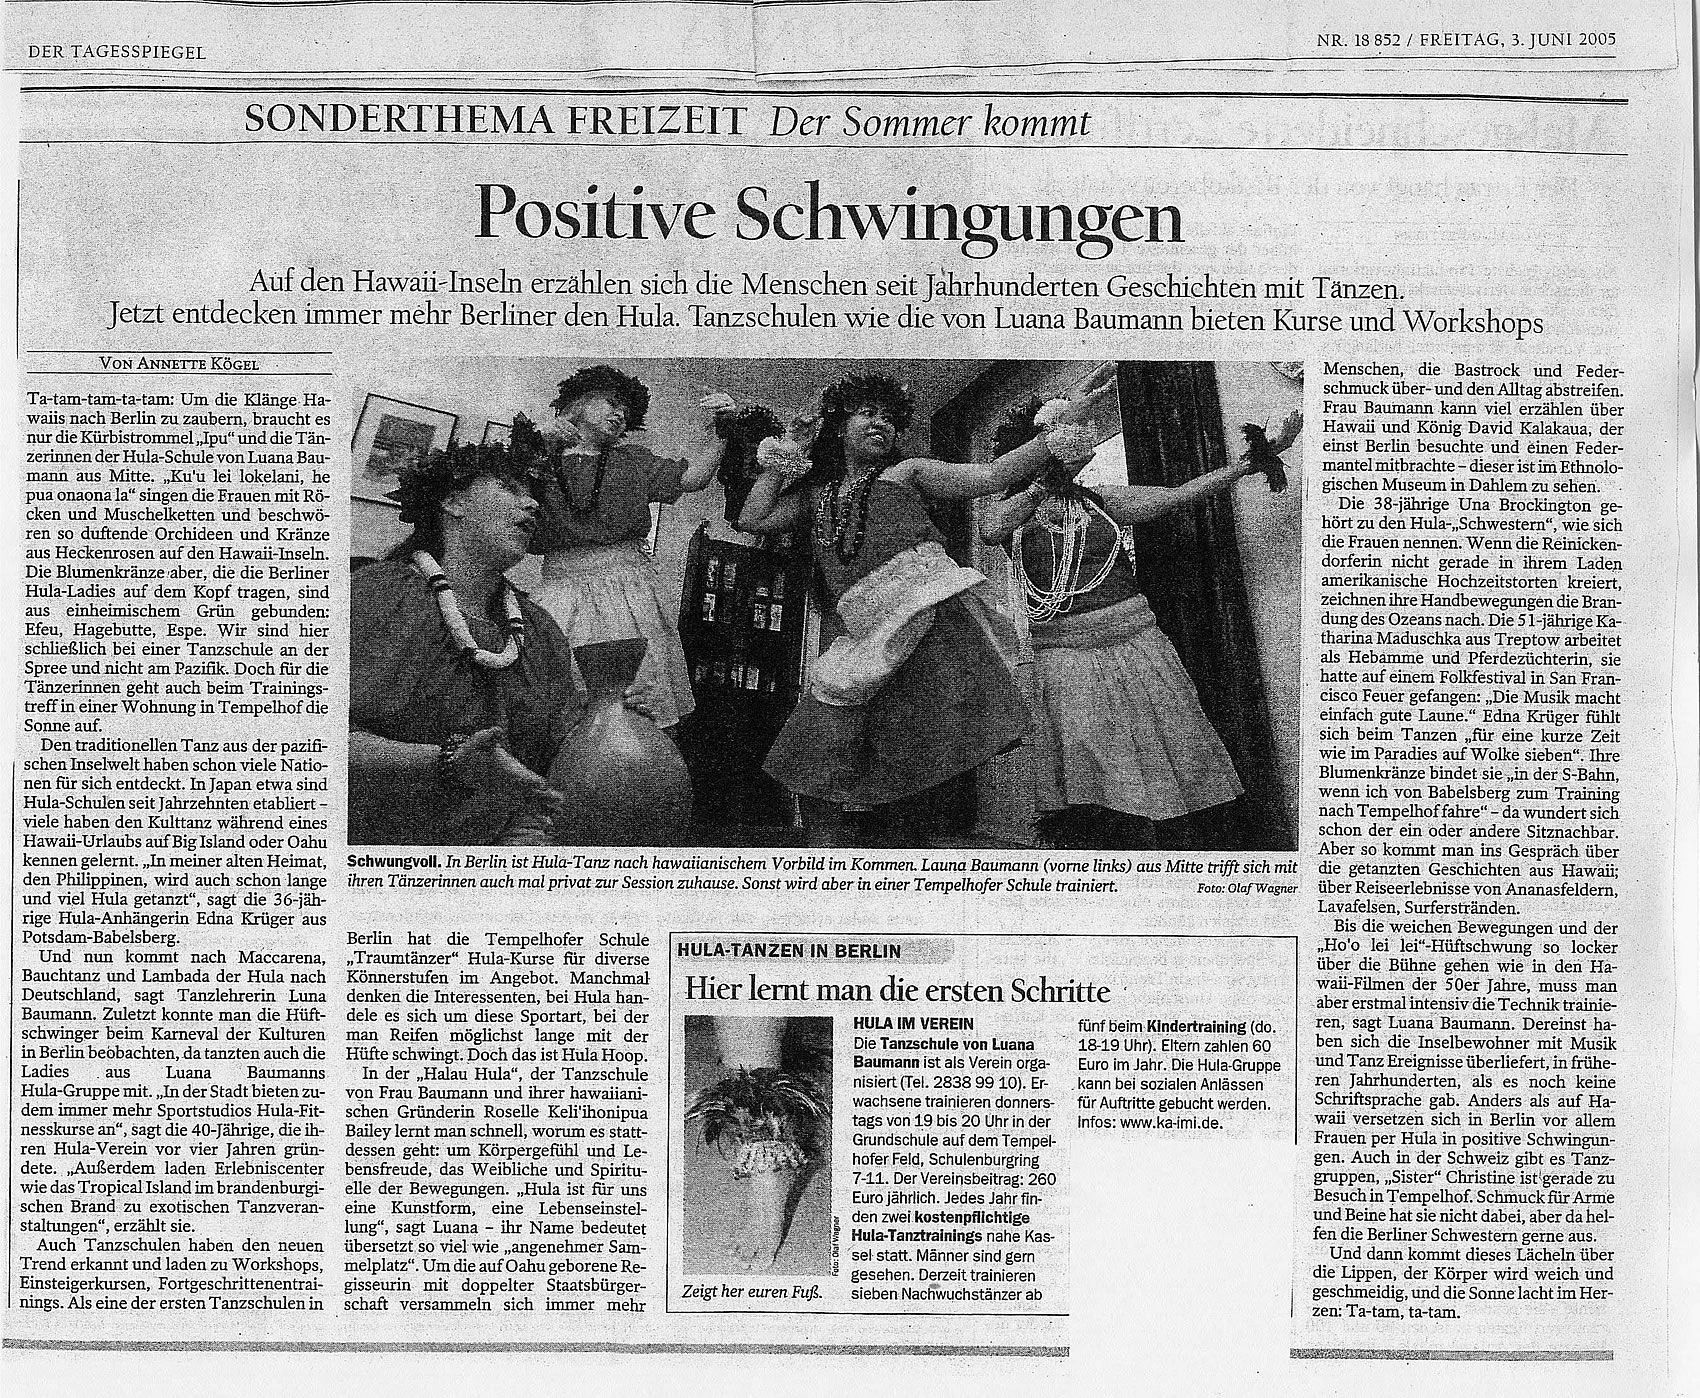 An article in the Berlin newspaper